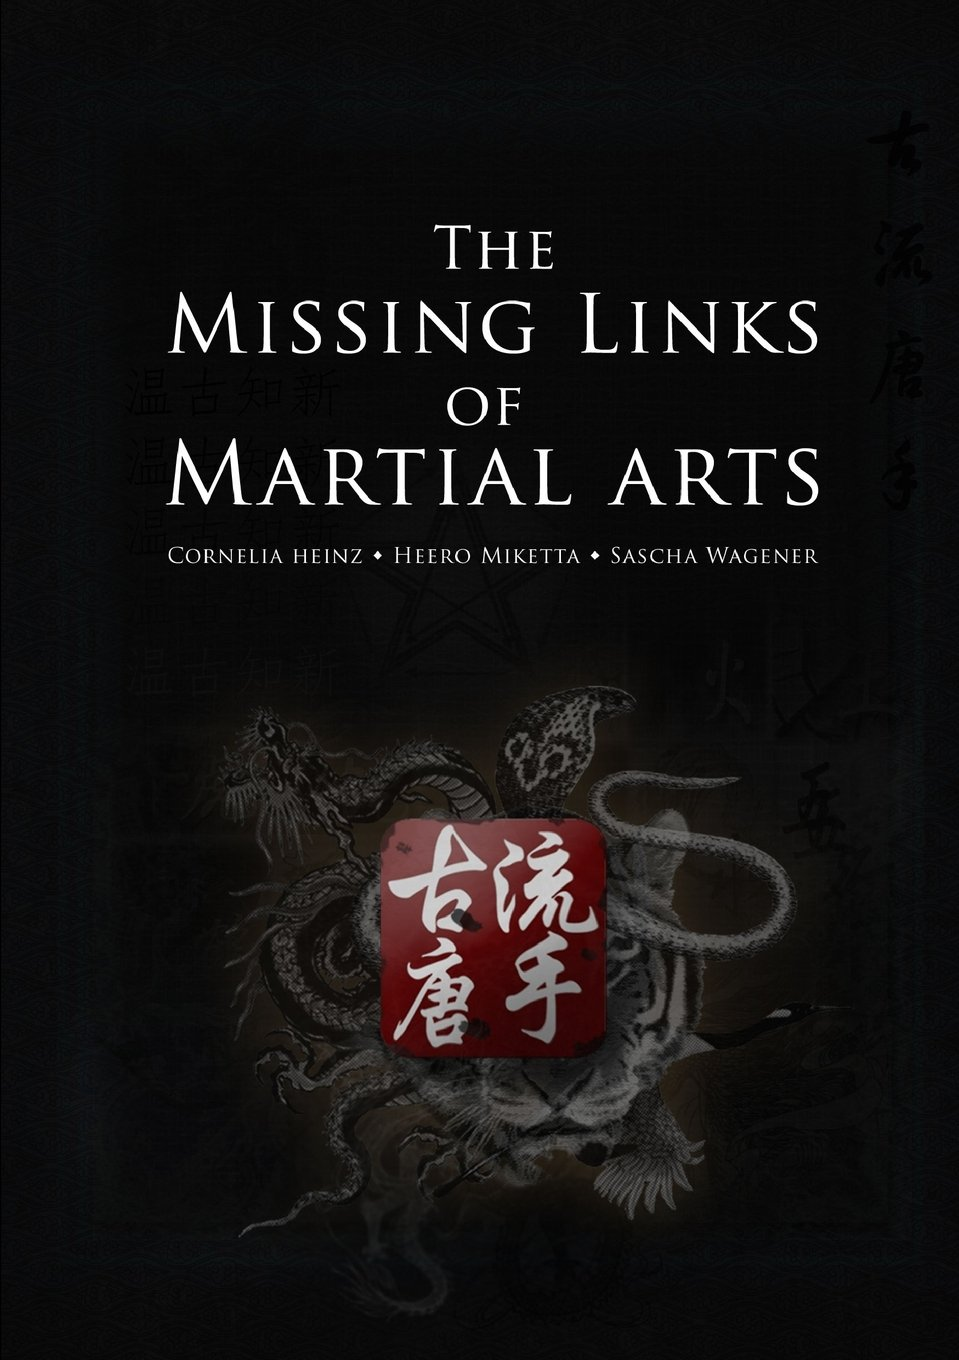 The Missing Links of Martial Arts